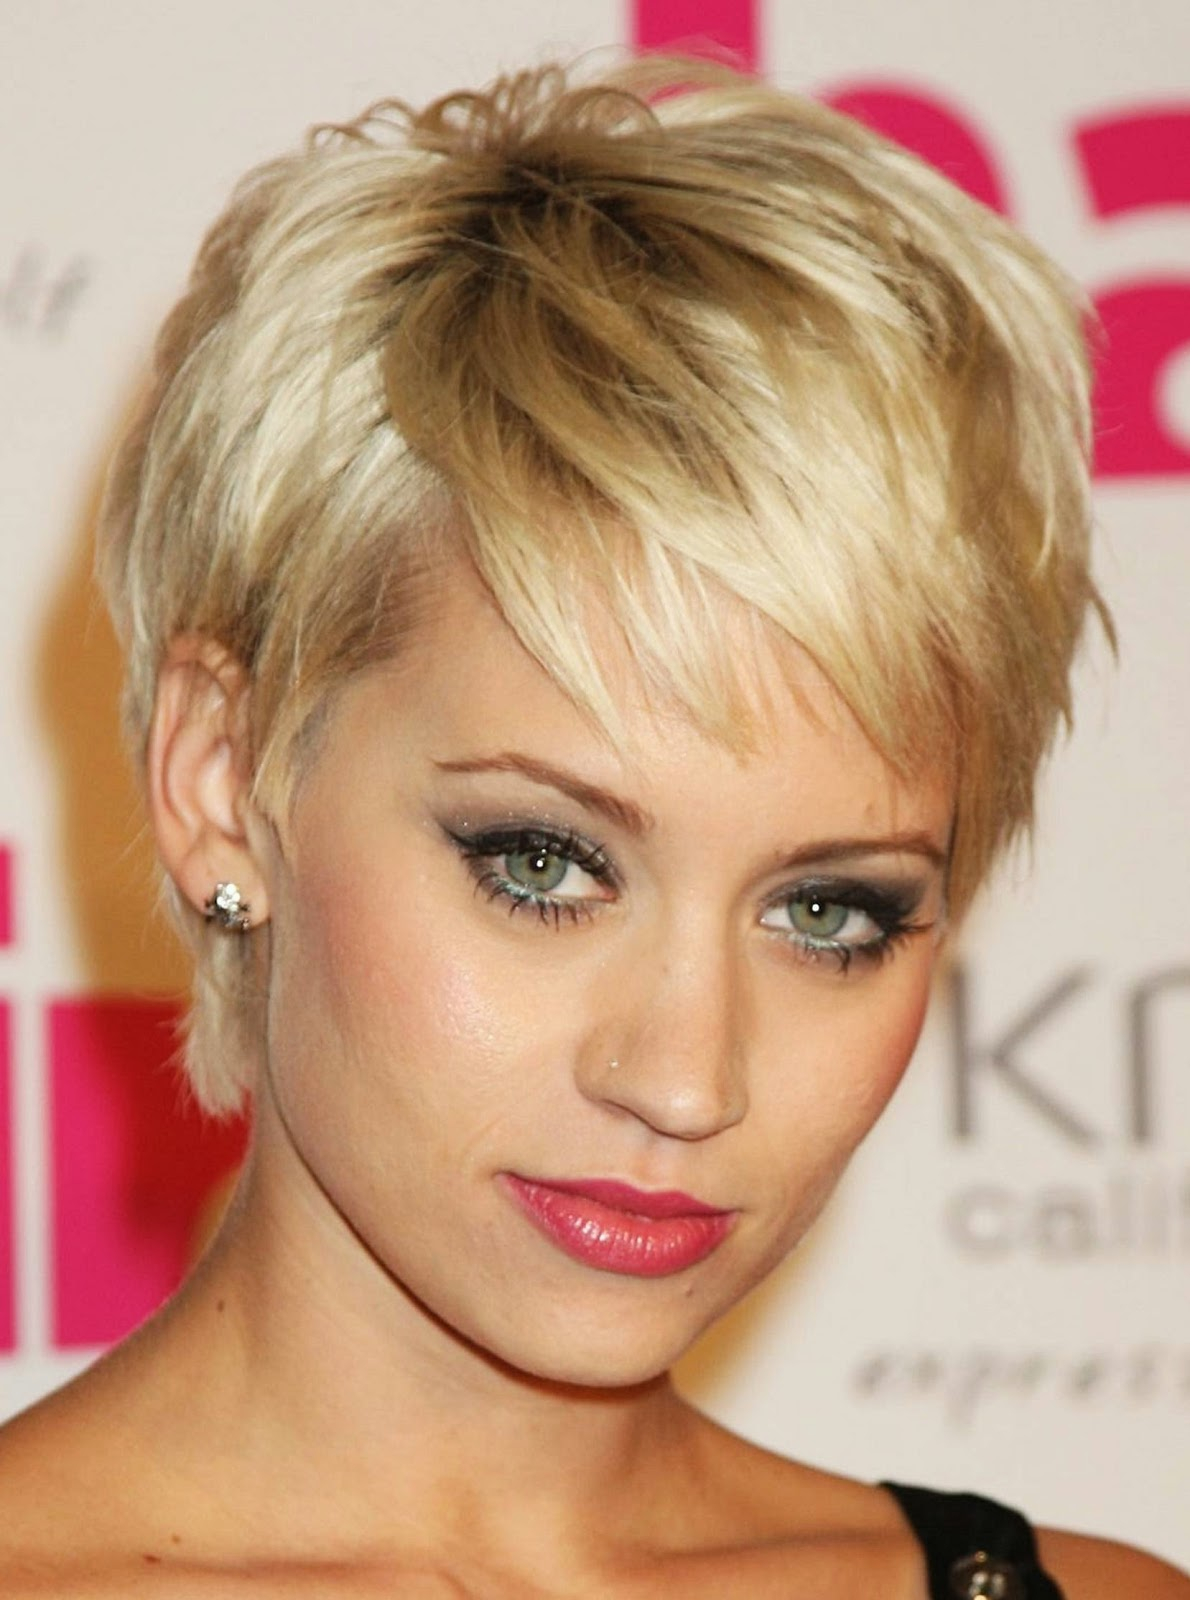 Phenomenal Short Easy Hairstyles Hairstyle Trends Hairstyles For Women Draintrainus